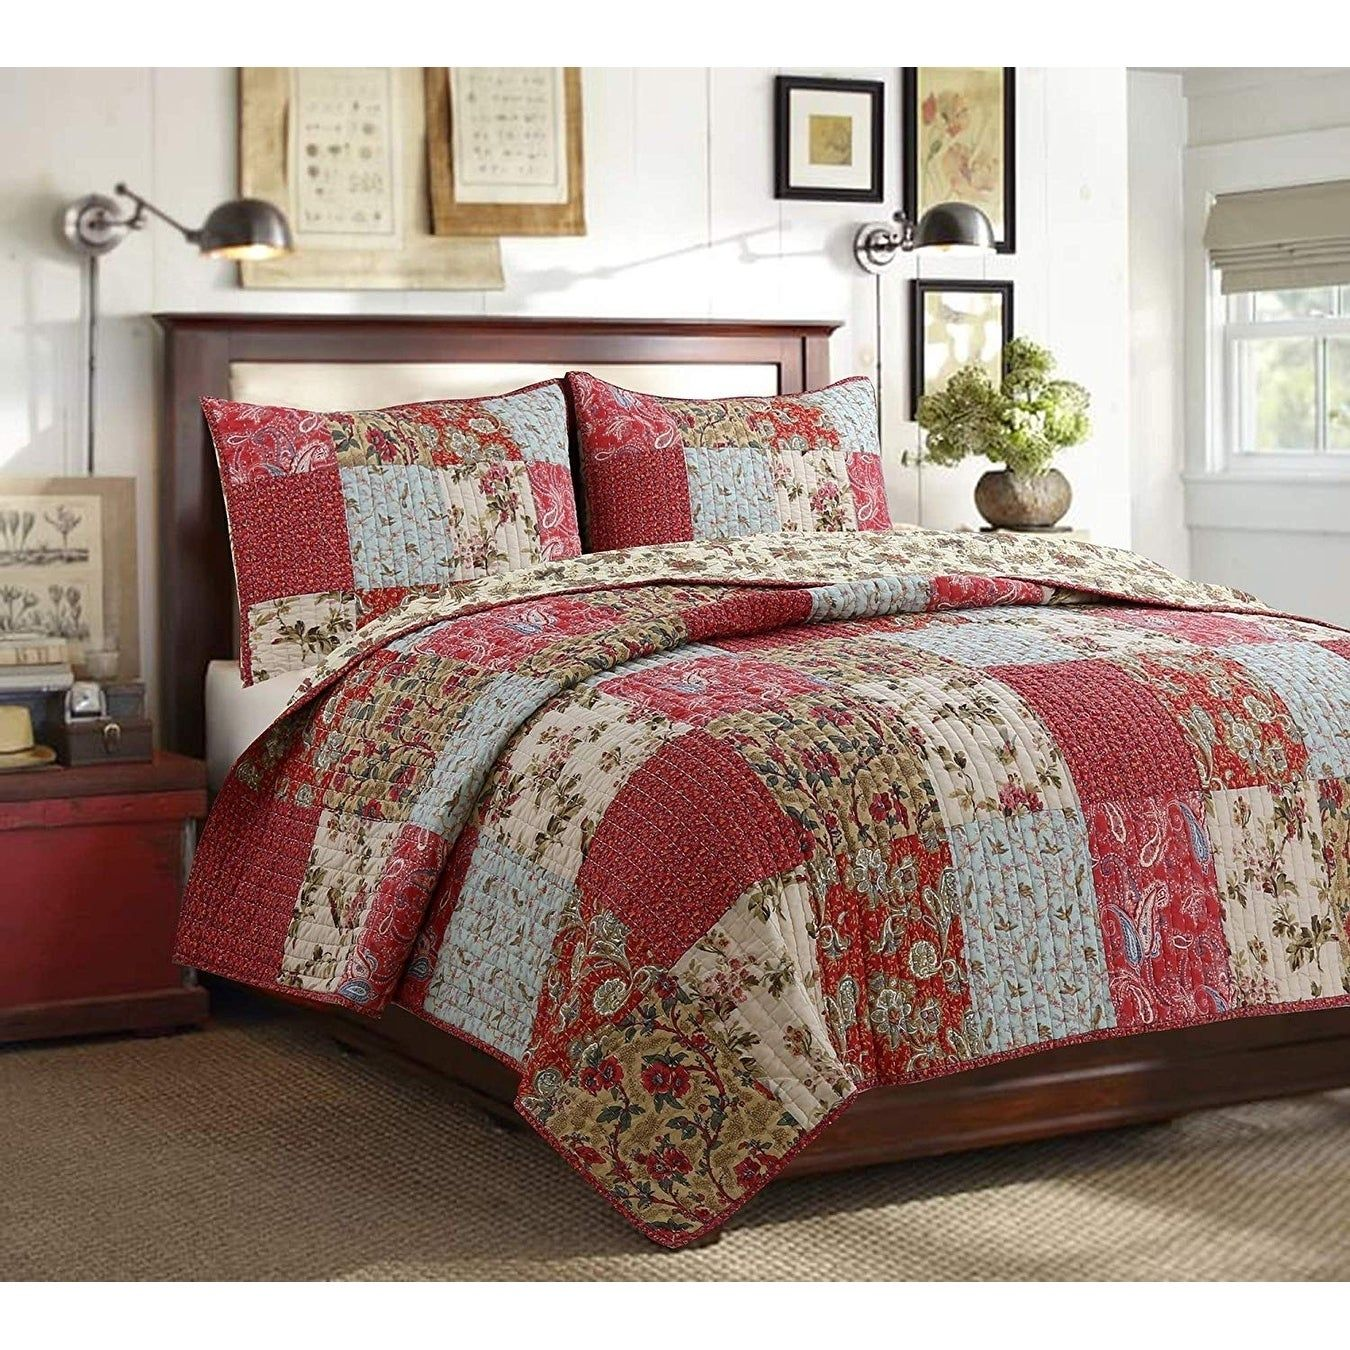 3pc ANTIQUE CHIC King Quilt Set Red Floral Paisley French Provincial Reversible